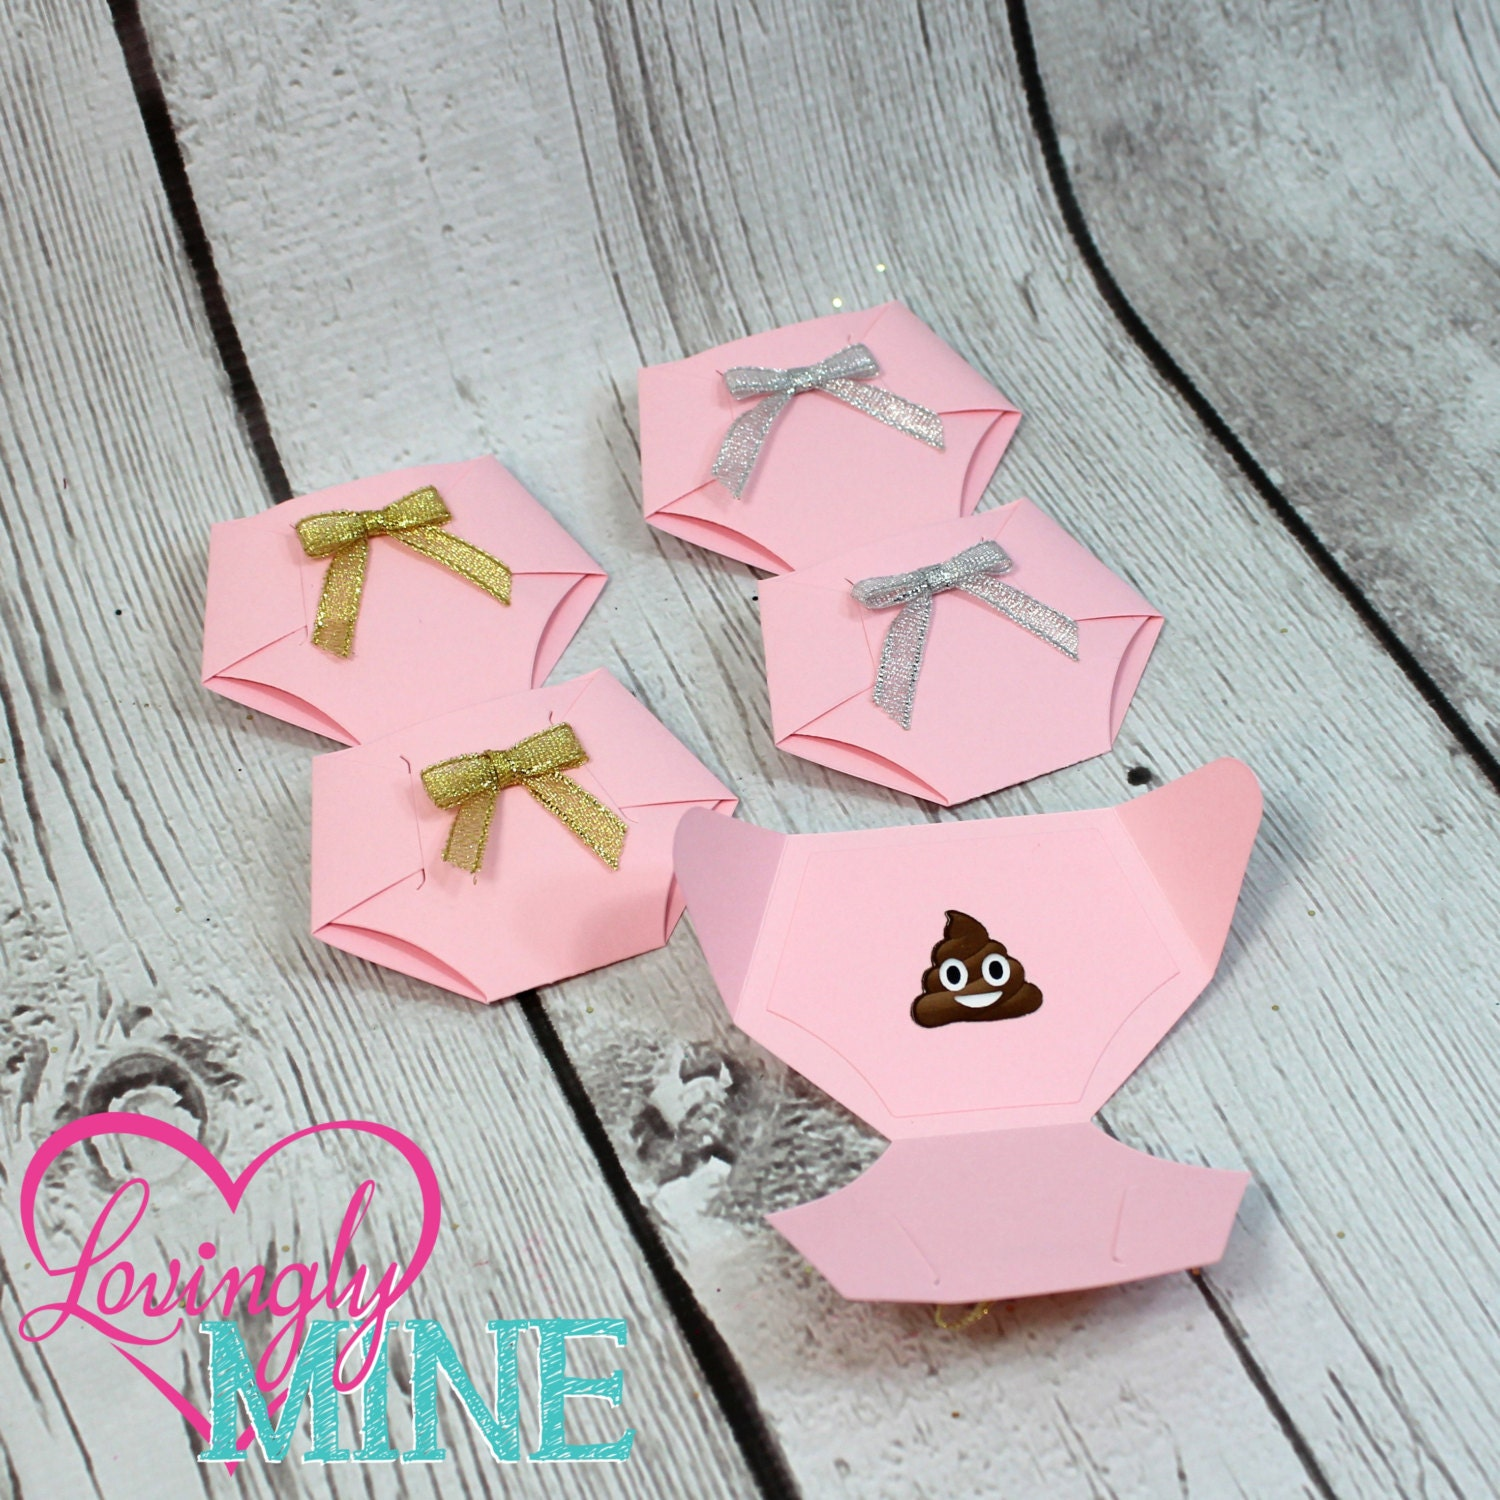 Things To Do With Diapers For A Baby Shower: Dirty Diaper Game Baby Pink Diaper Pins Gold Or Silver Bows